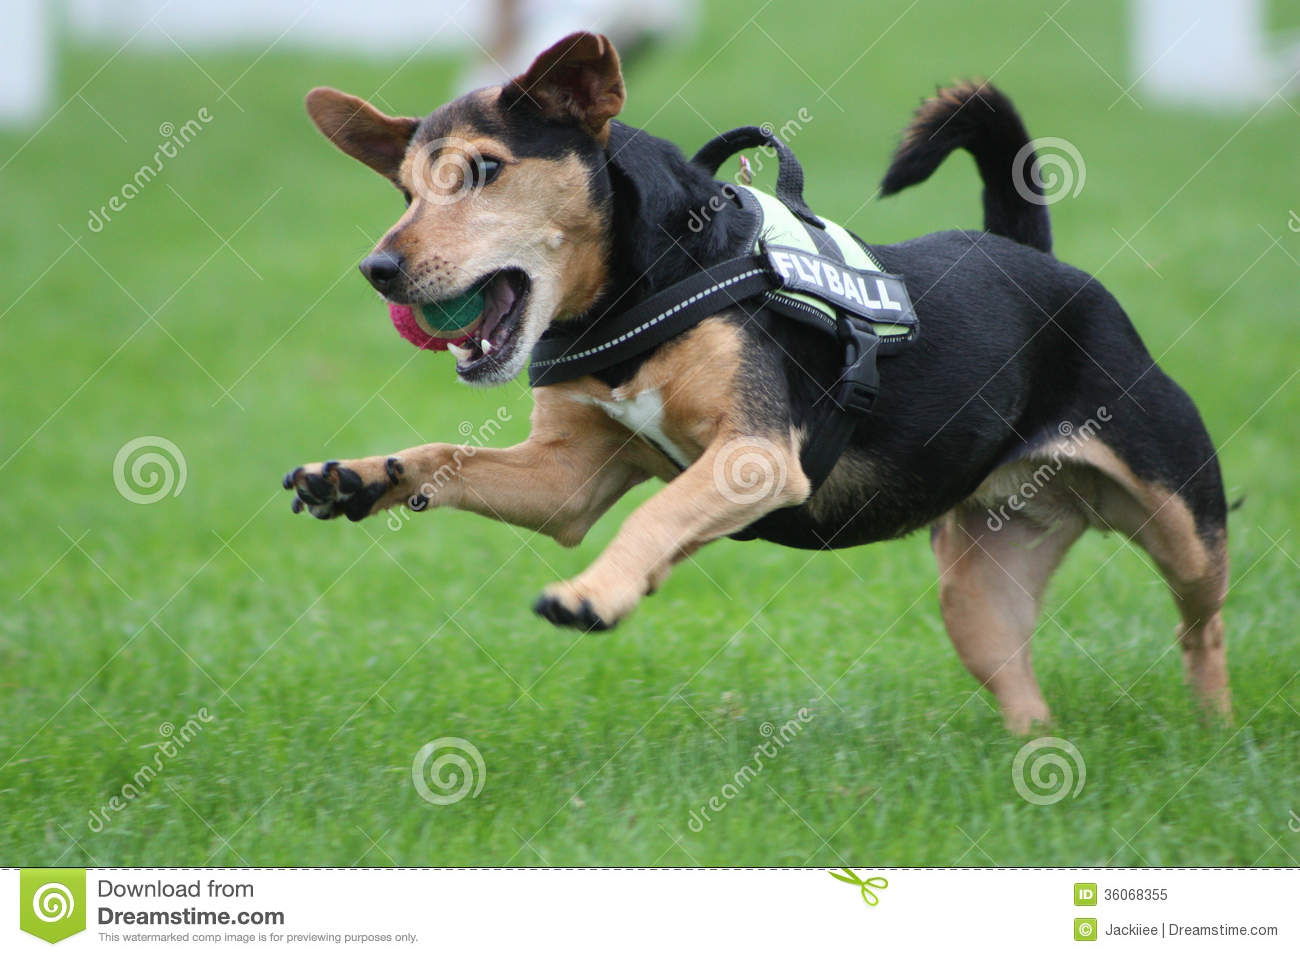 Jumping Dog Royalty Free Stock Photo - Image: 36068355